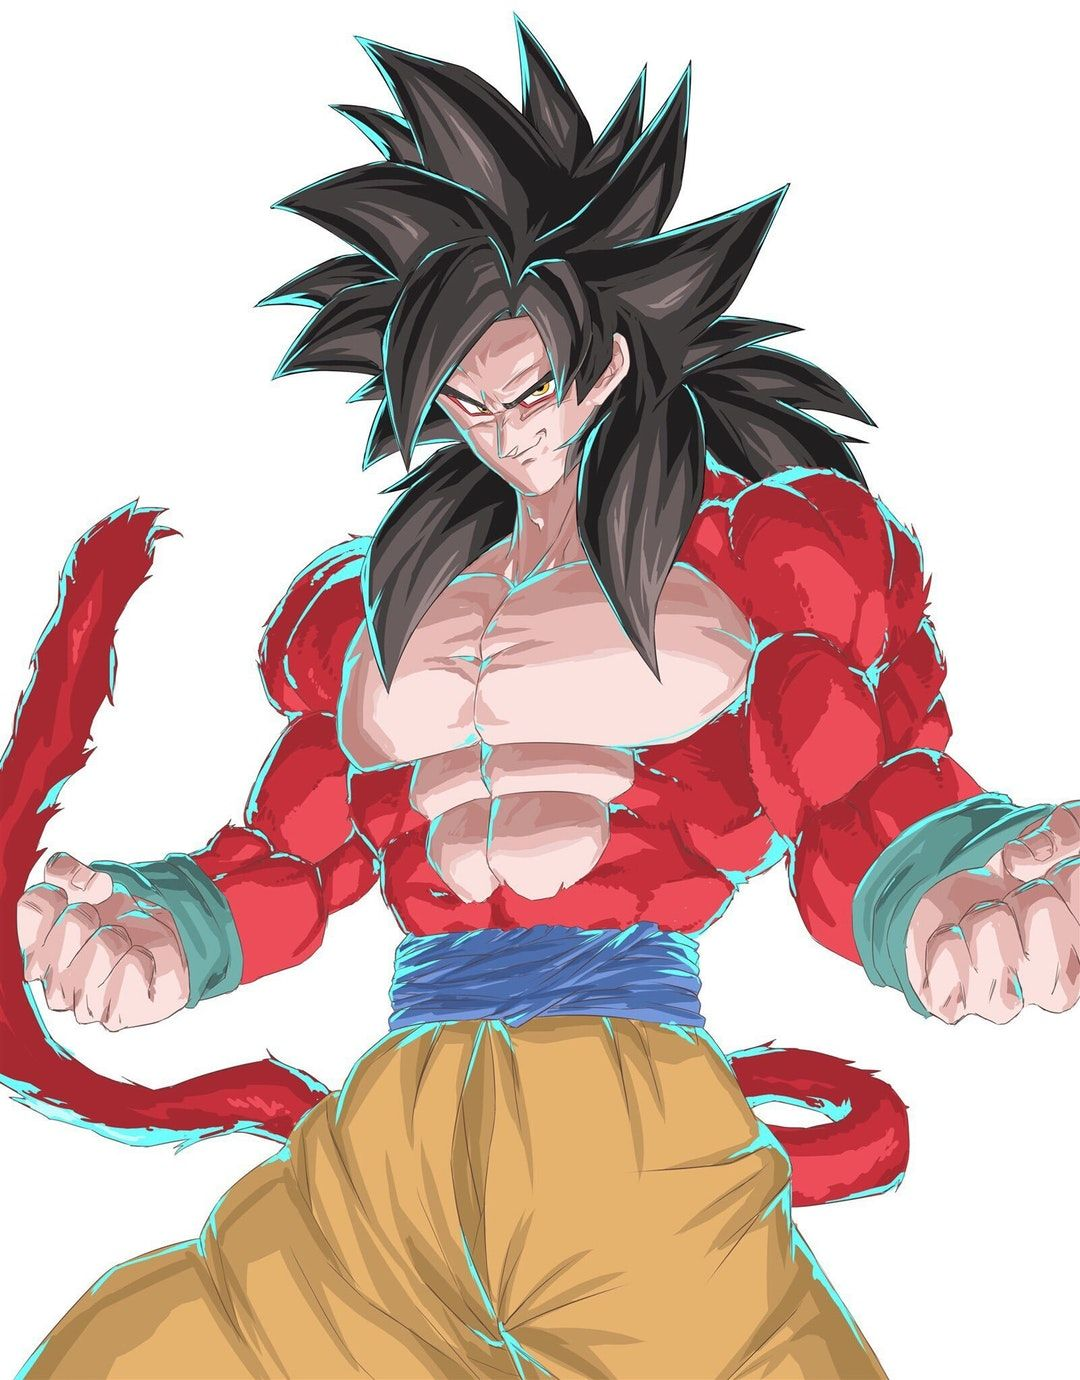 Super Saiyan 4 Goku by りーや [hakuhaku0315 on Twitter